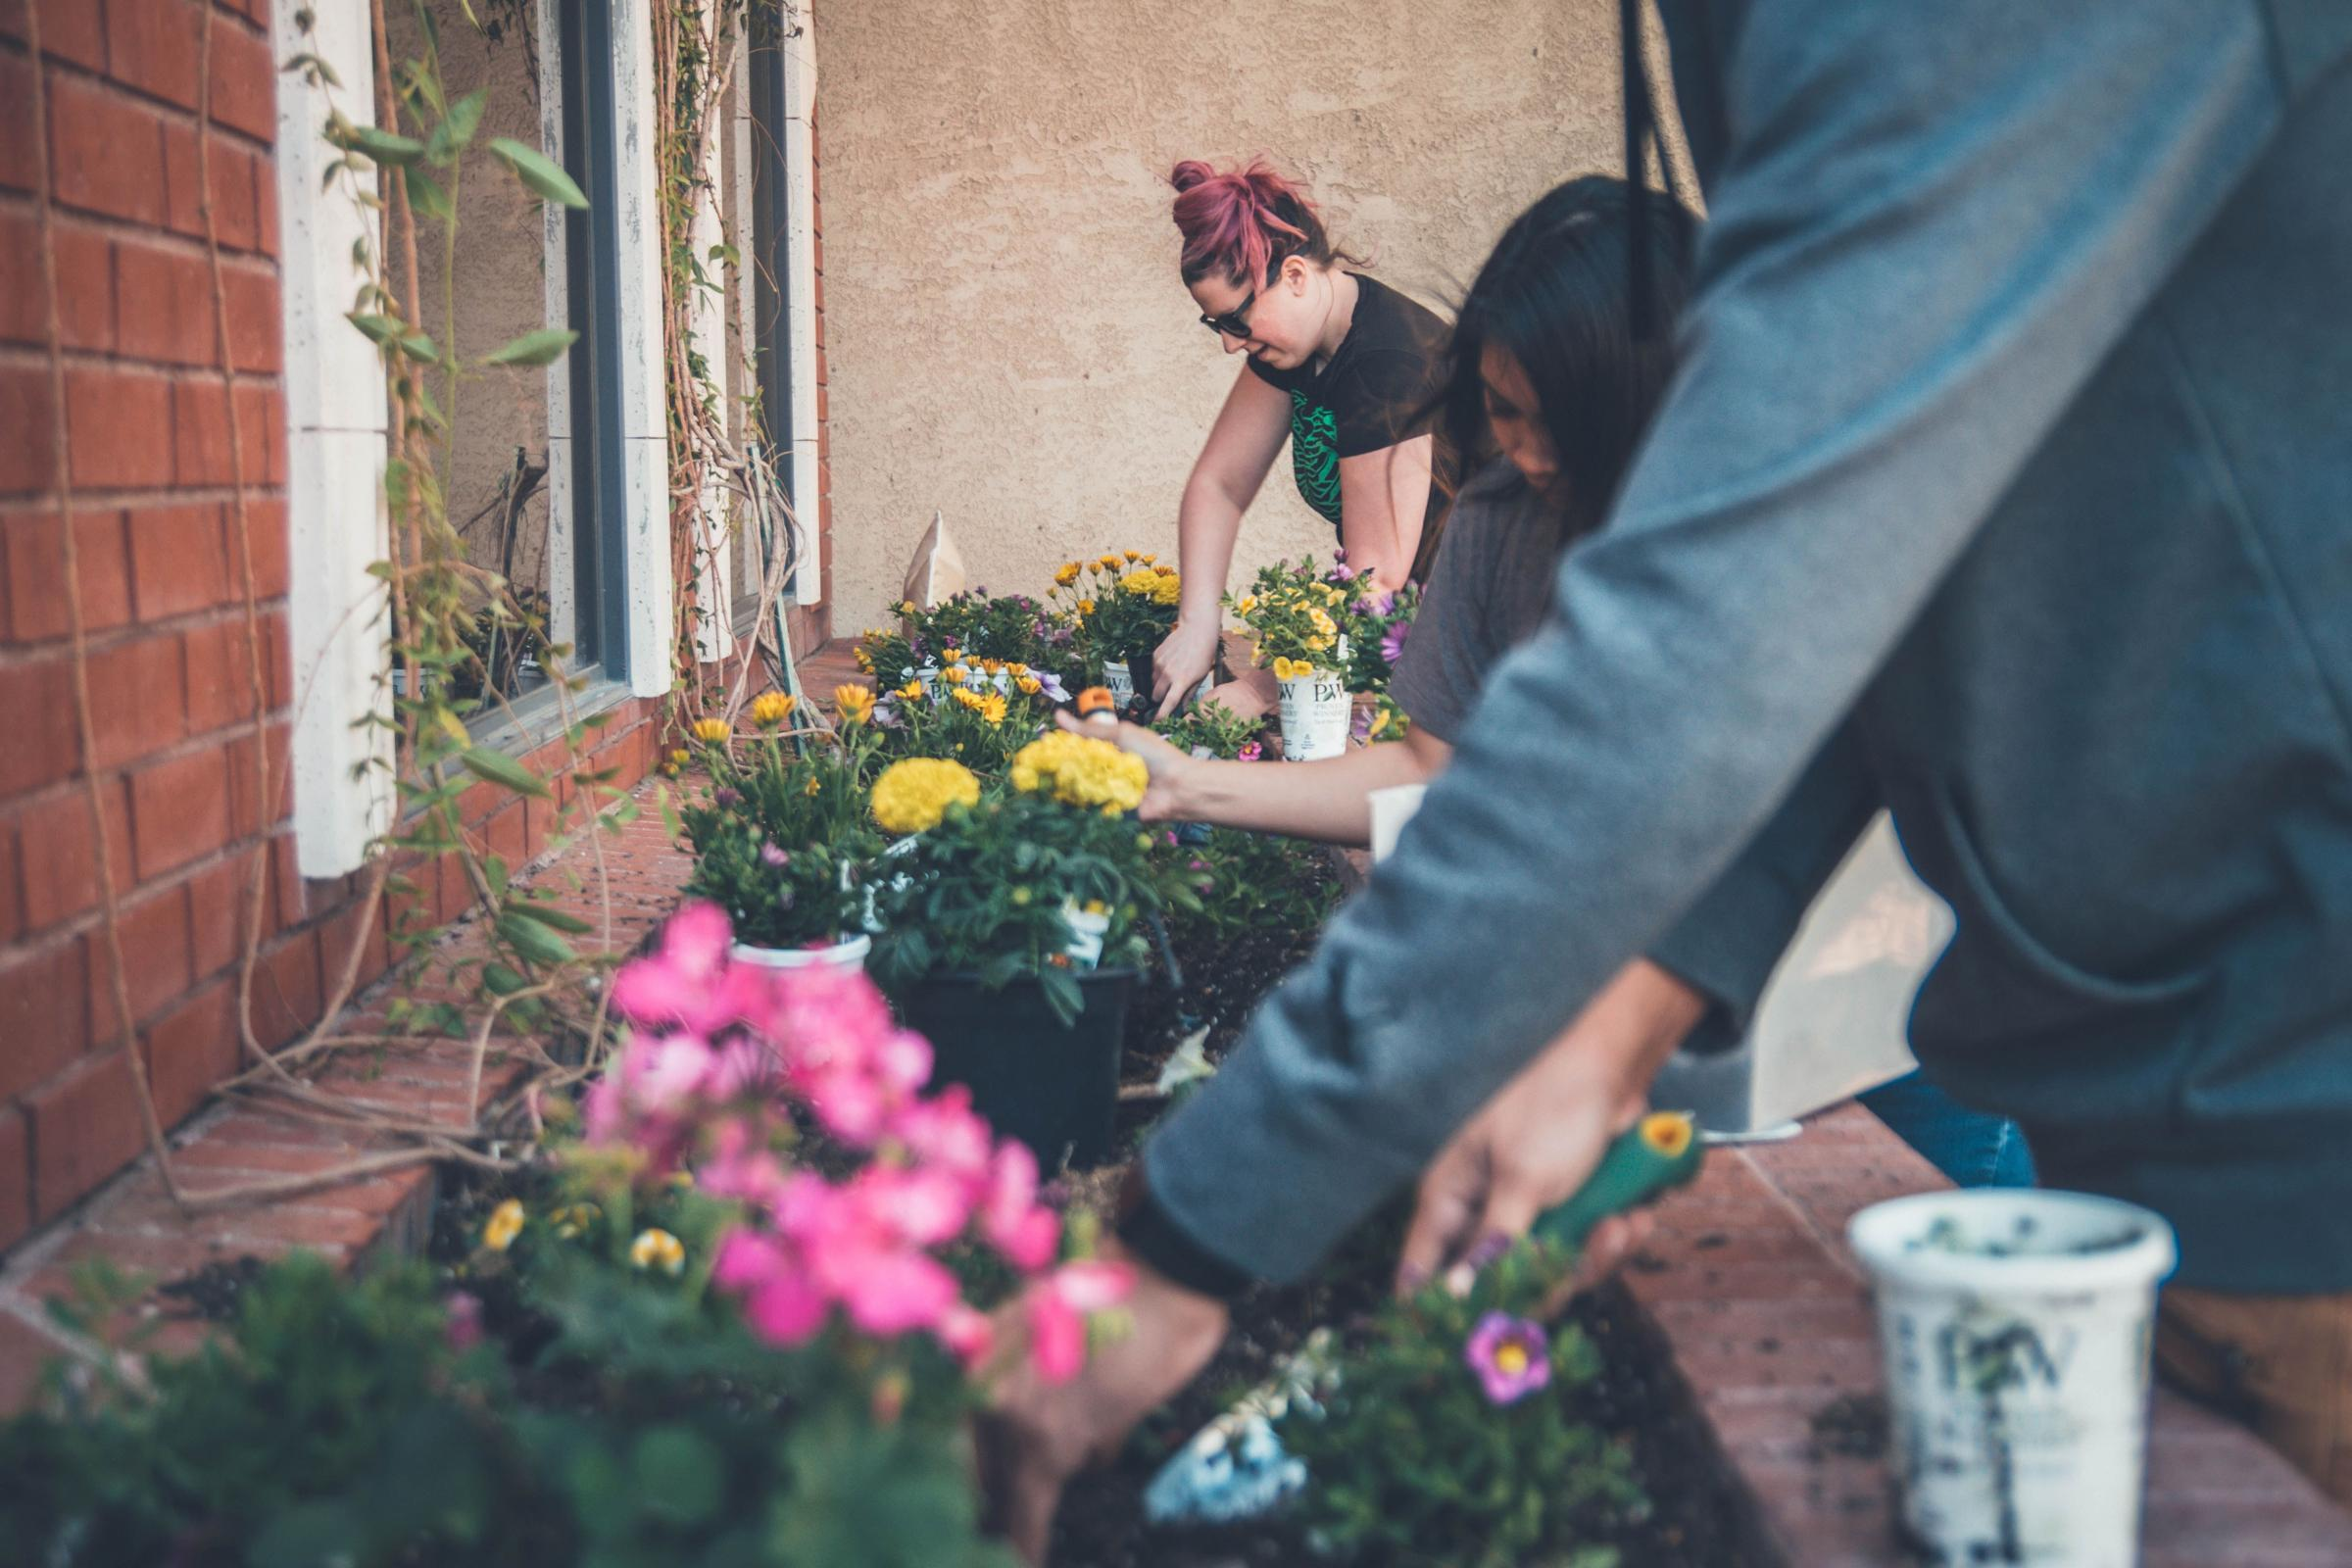 The seeds of change: how gardening is saving people's lives